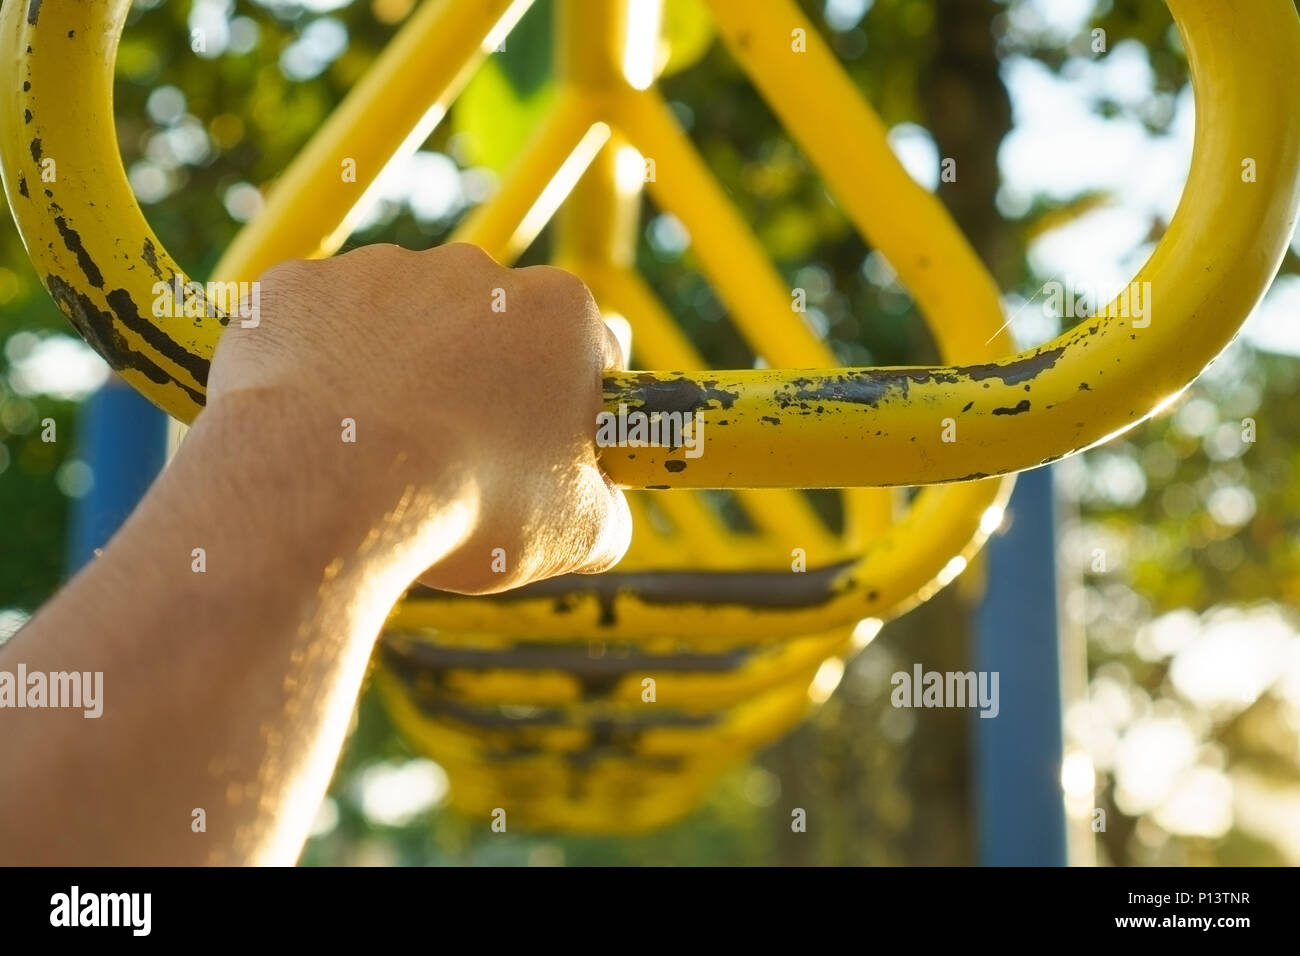 Hand holding metal triangle hanging bar at recreational park. - Stock Image